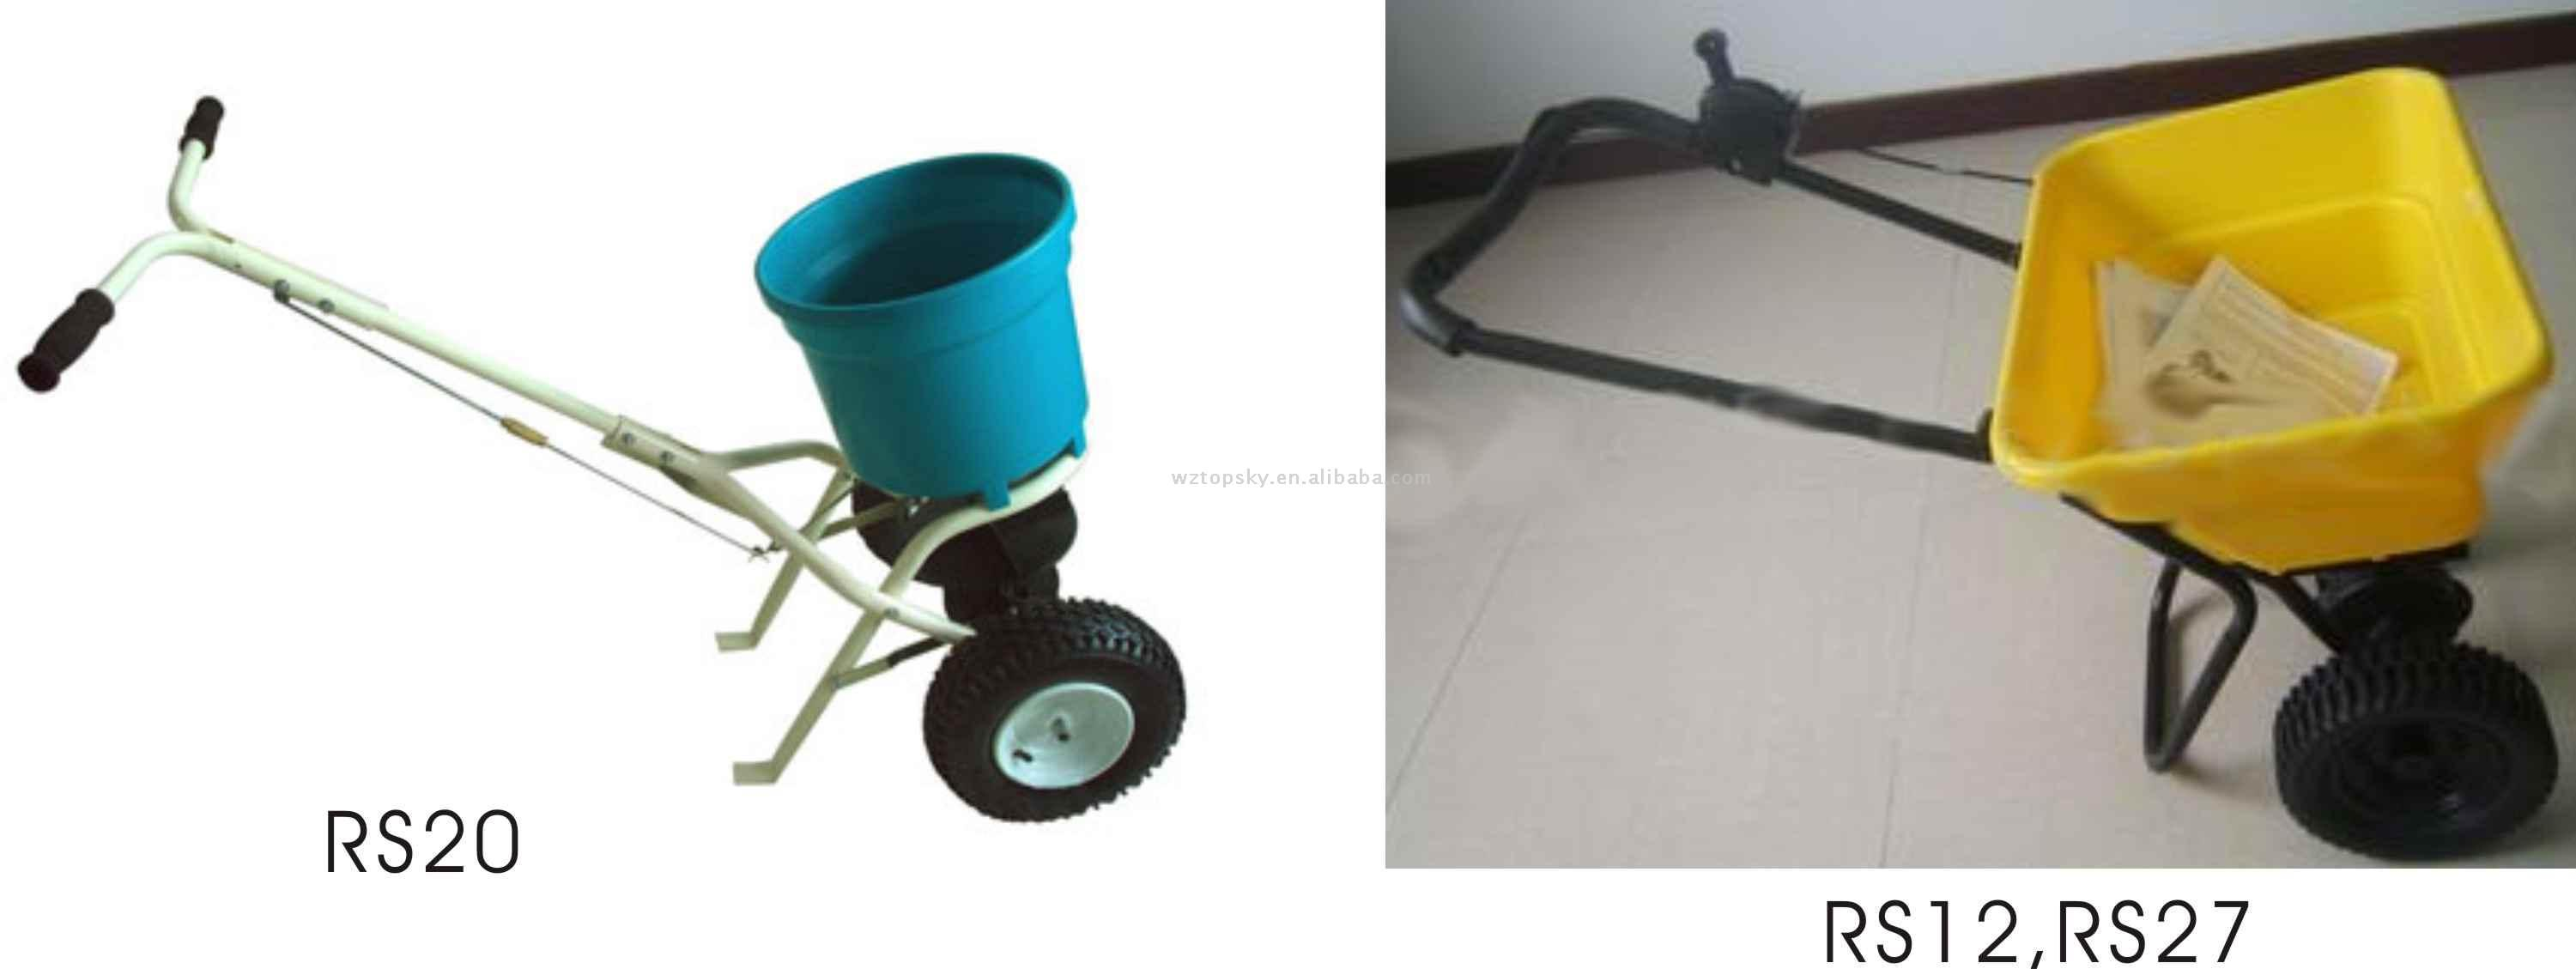 Seeder / Fertilizer / Spreader